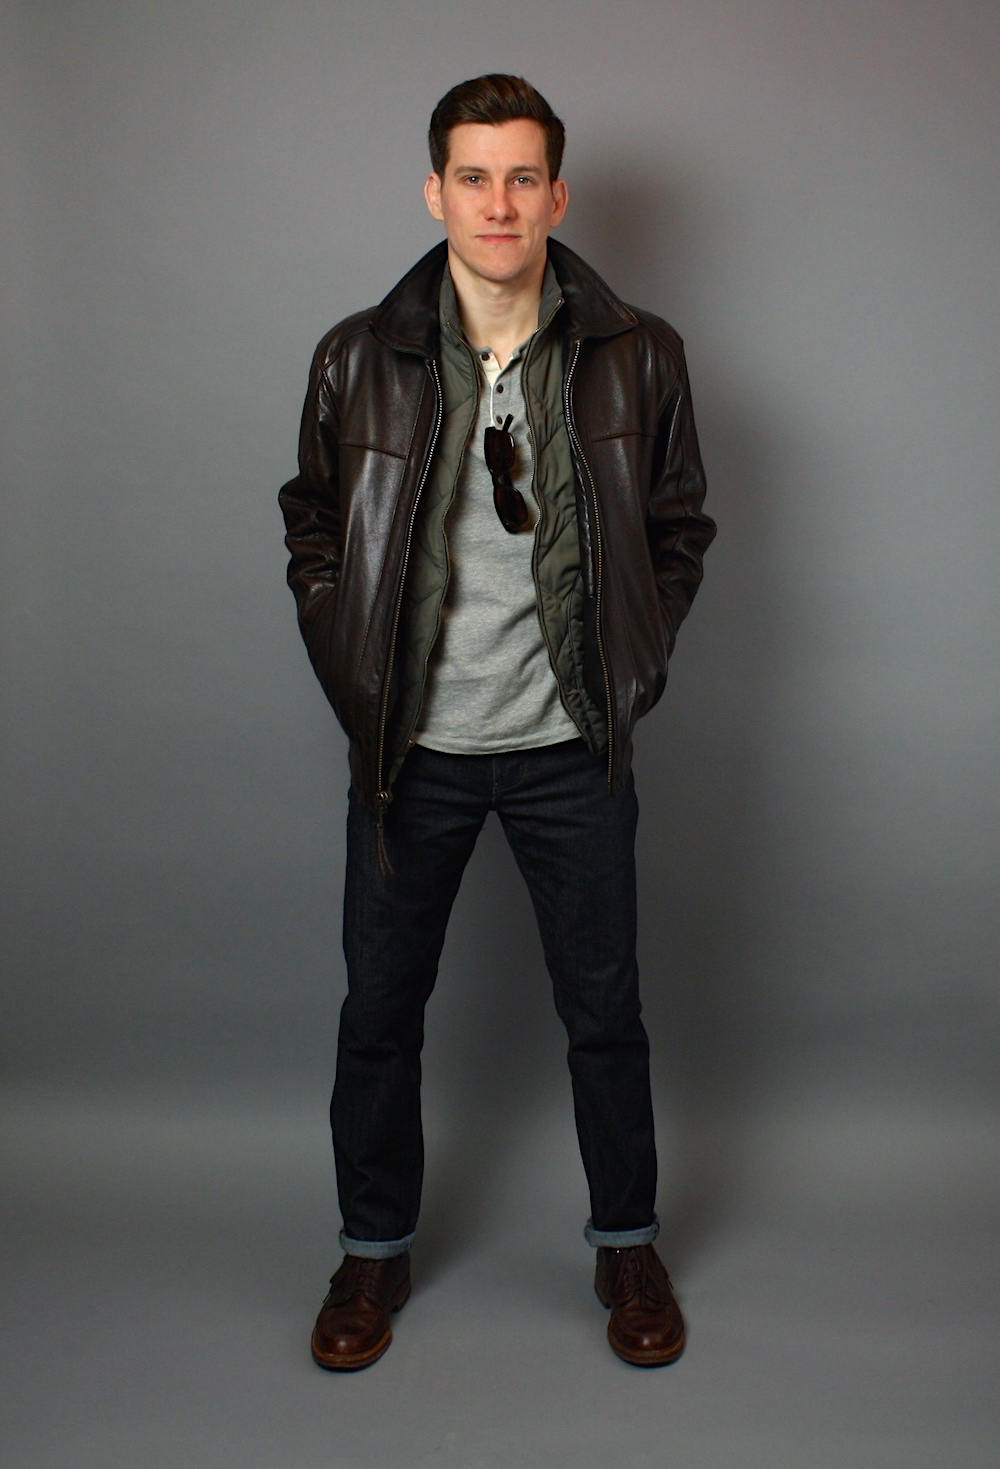 Generally, you want to pair a brown leather jacket with brown shoes and black leather jackets with black shoes. If your brown is on the darker side, you can wear black shoes. But it's a bit hard to pull of light brown shoes and a black leather jacket.